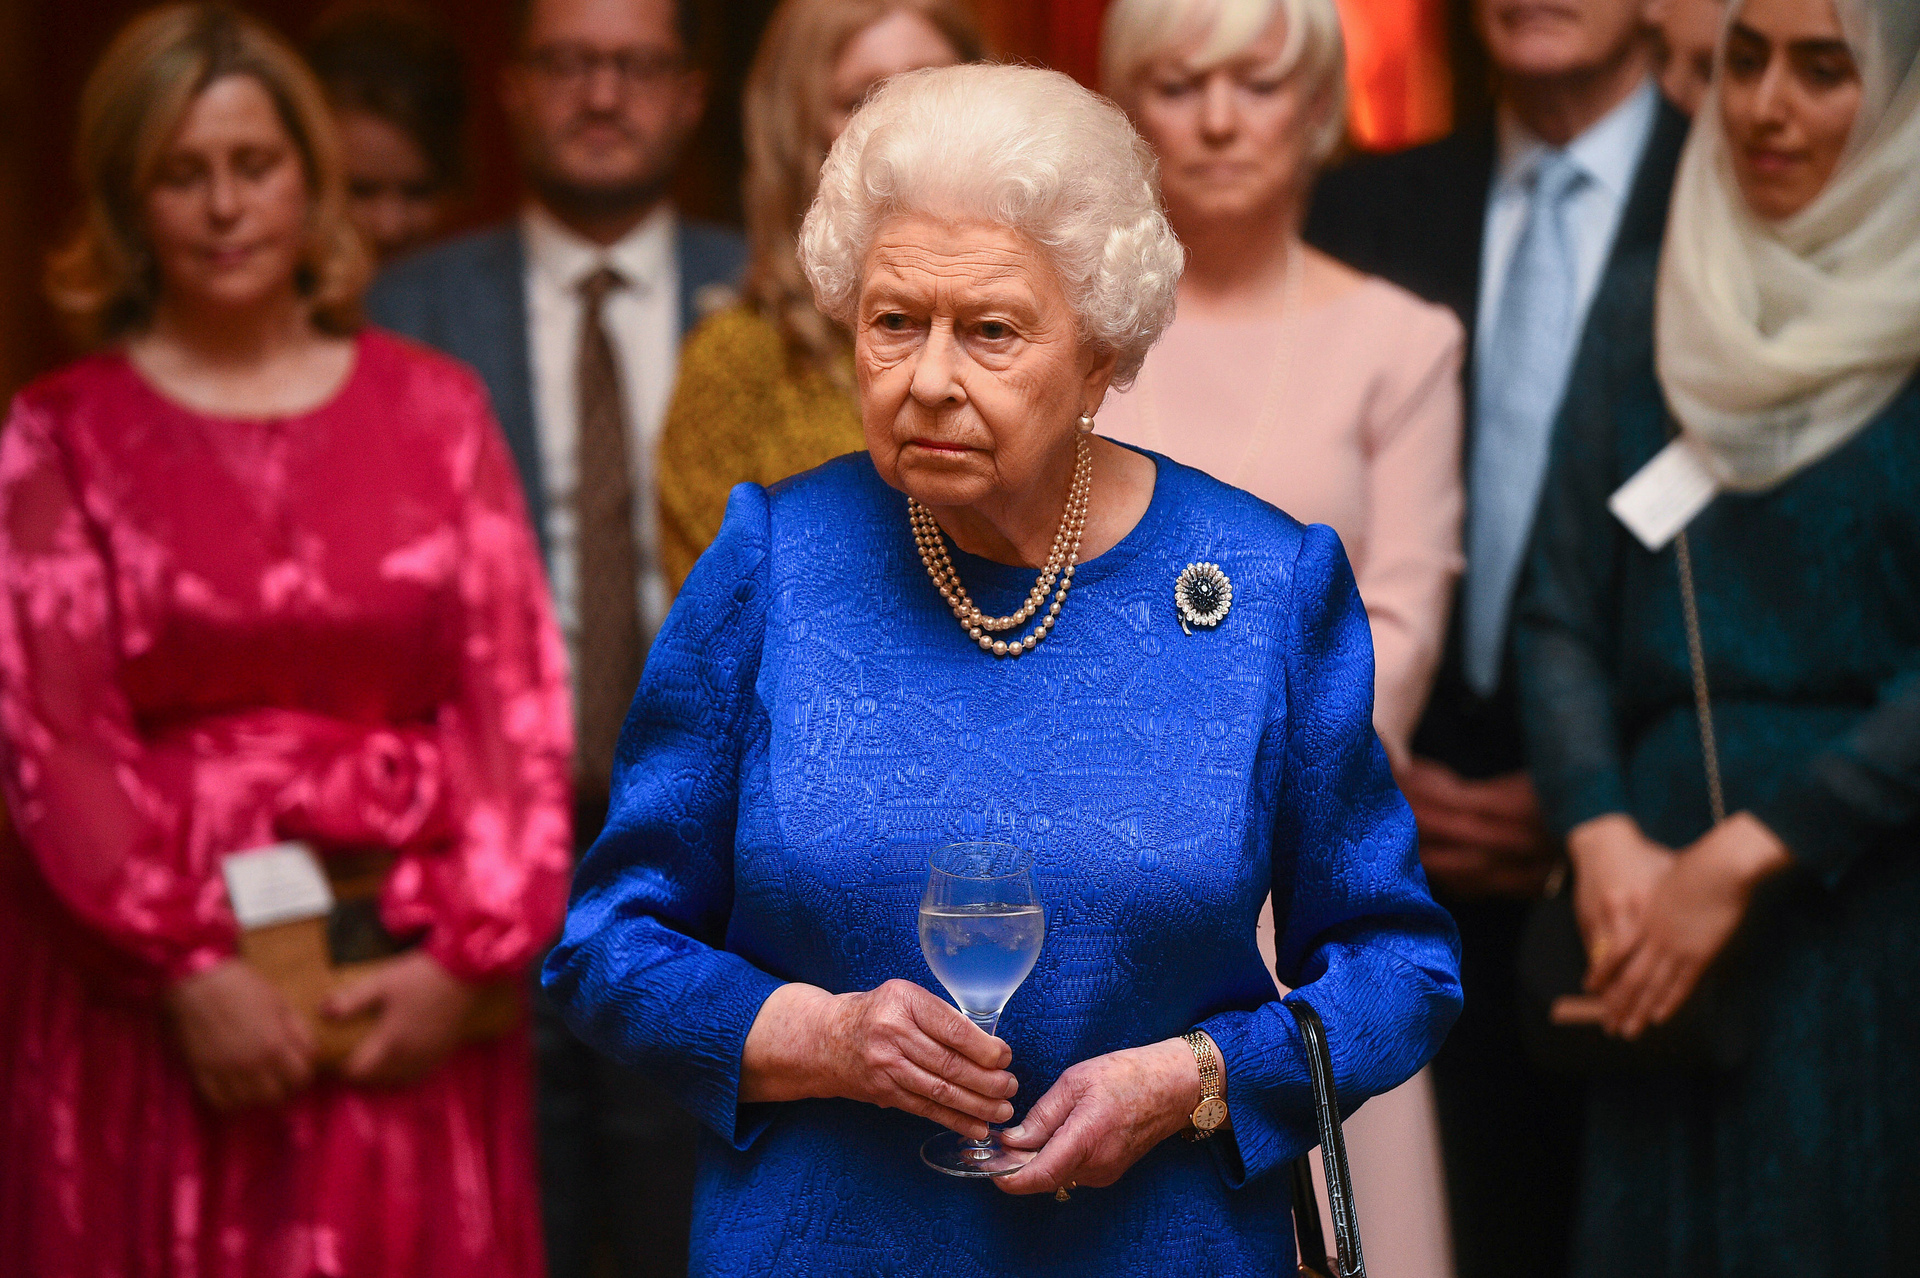 'A huge failure': Queen makes biggest Prince Andrew mistake yet